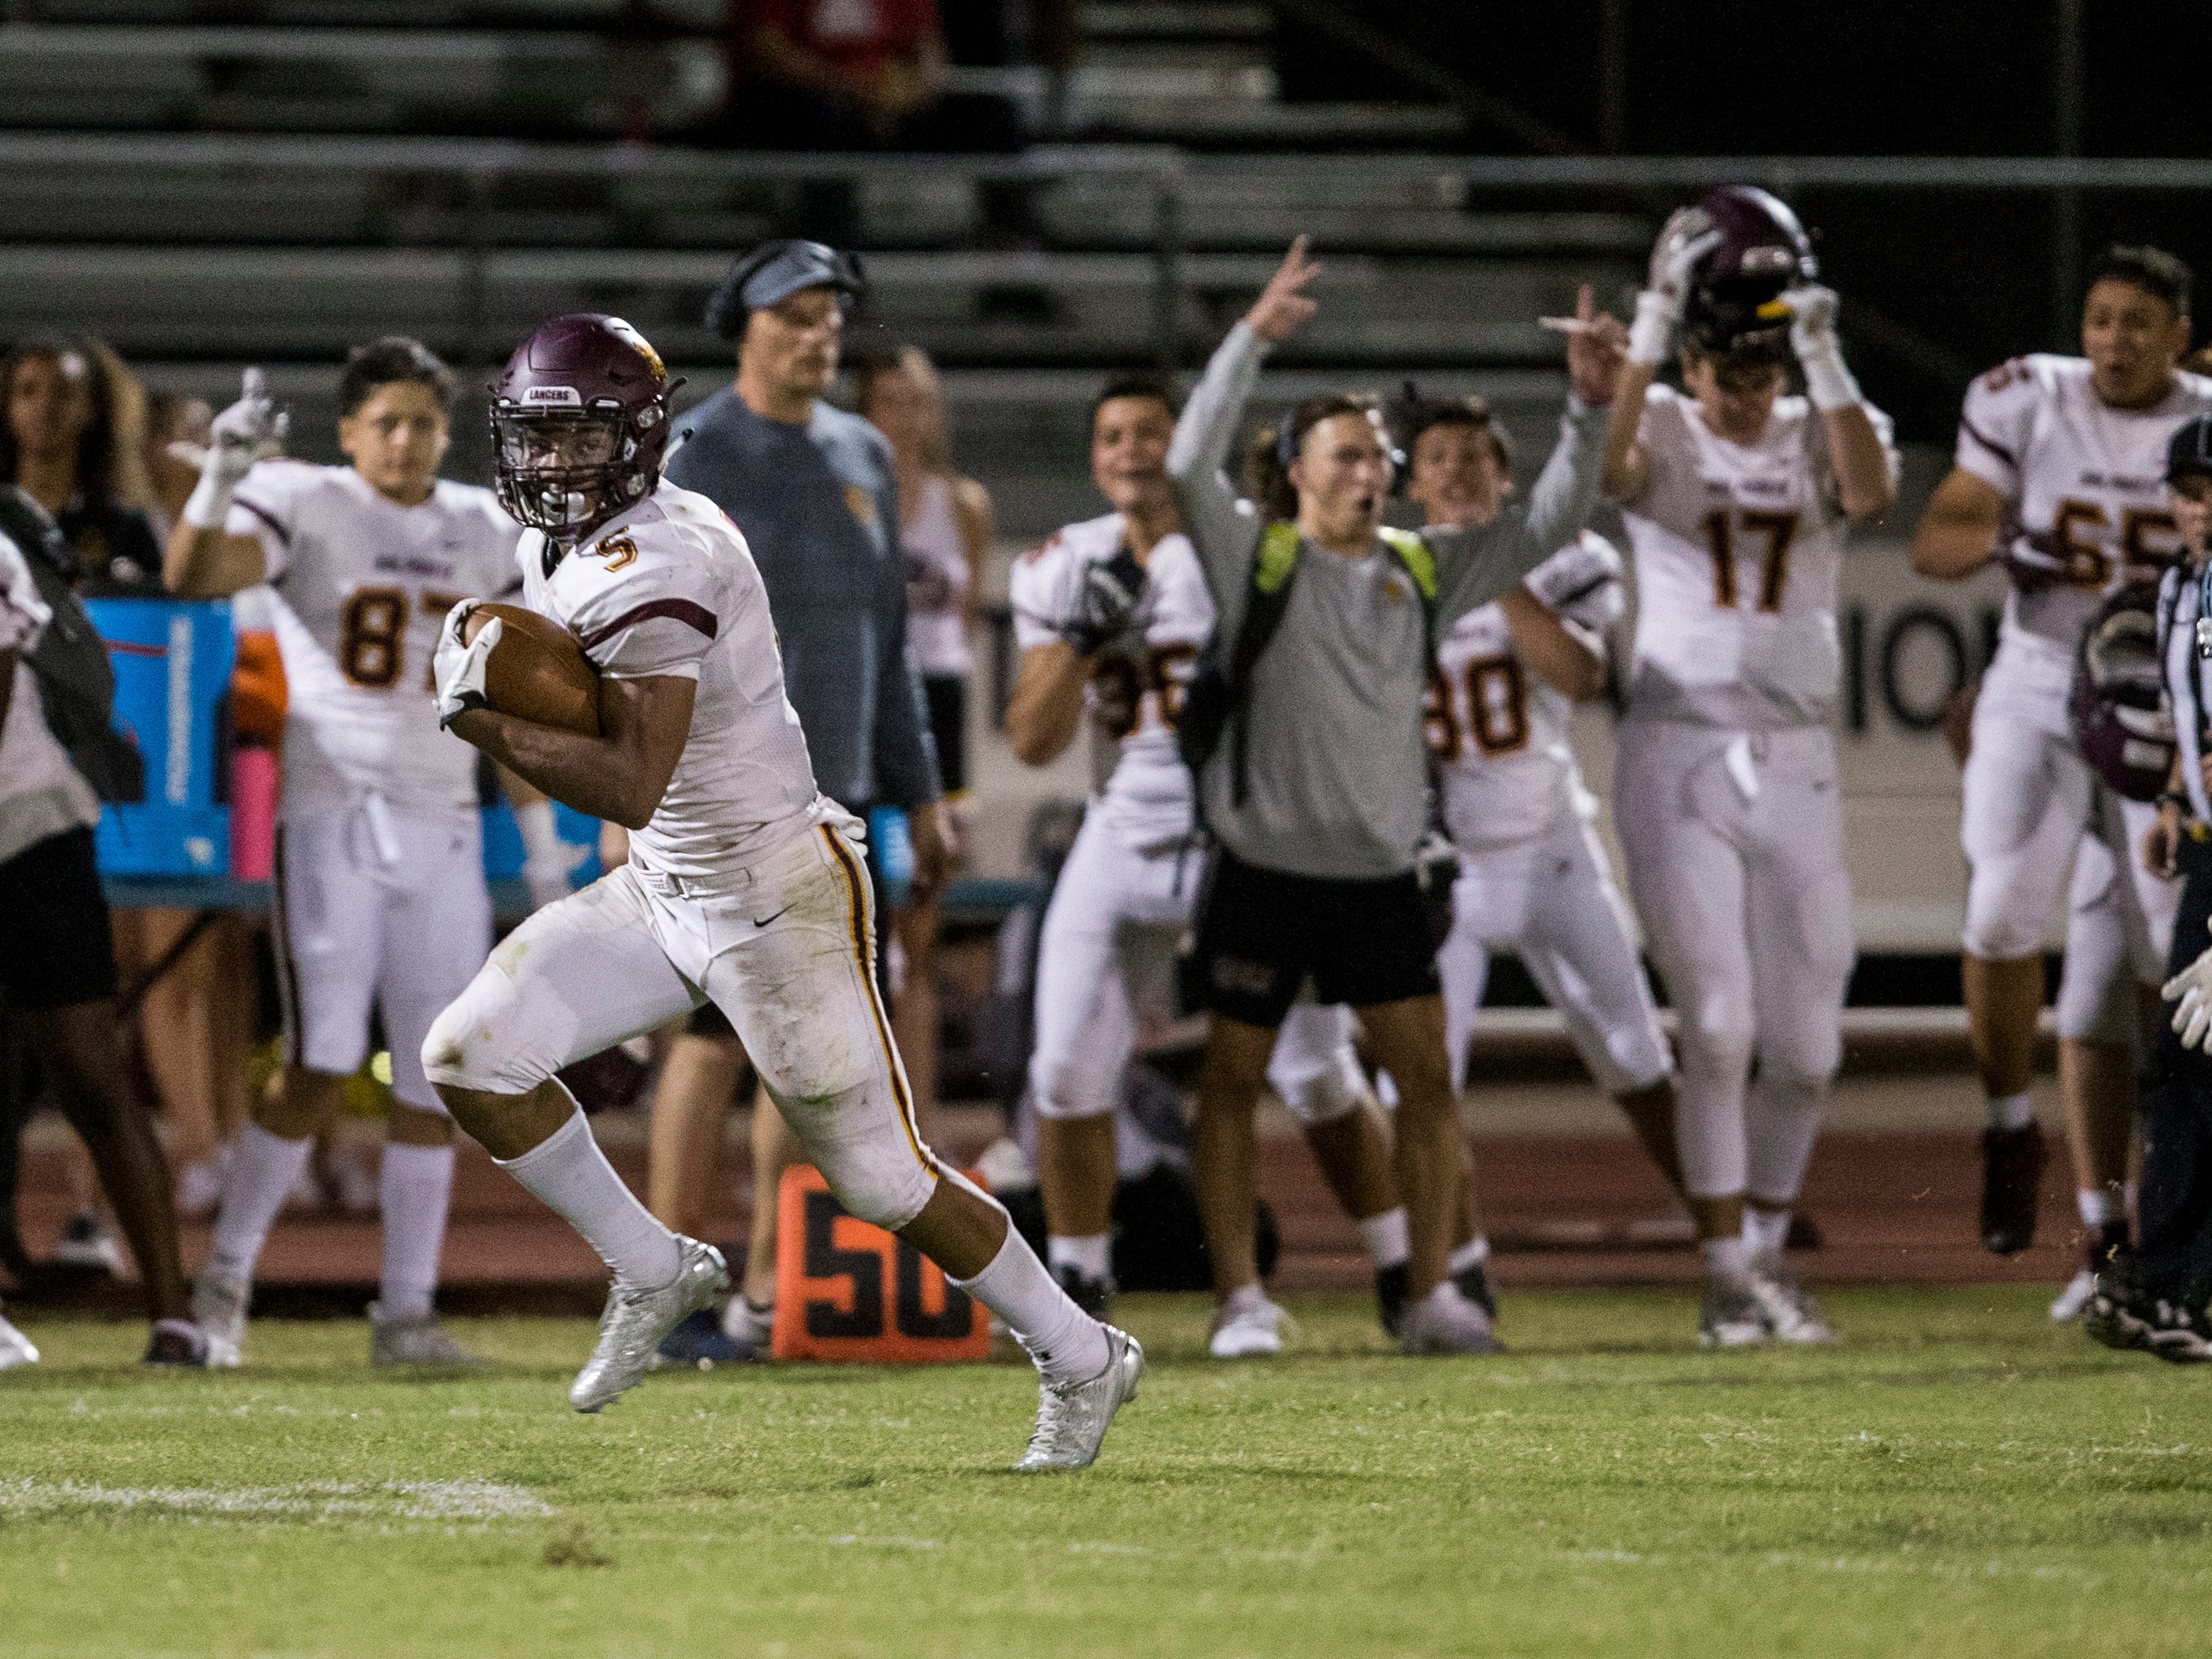 Salpointe's Bijan Robinson rushes for a touchdown against Cactus in the 2nd quarter on Friday, Sept. 14, 2018, at Cactus High School in Glendale, Ariz.